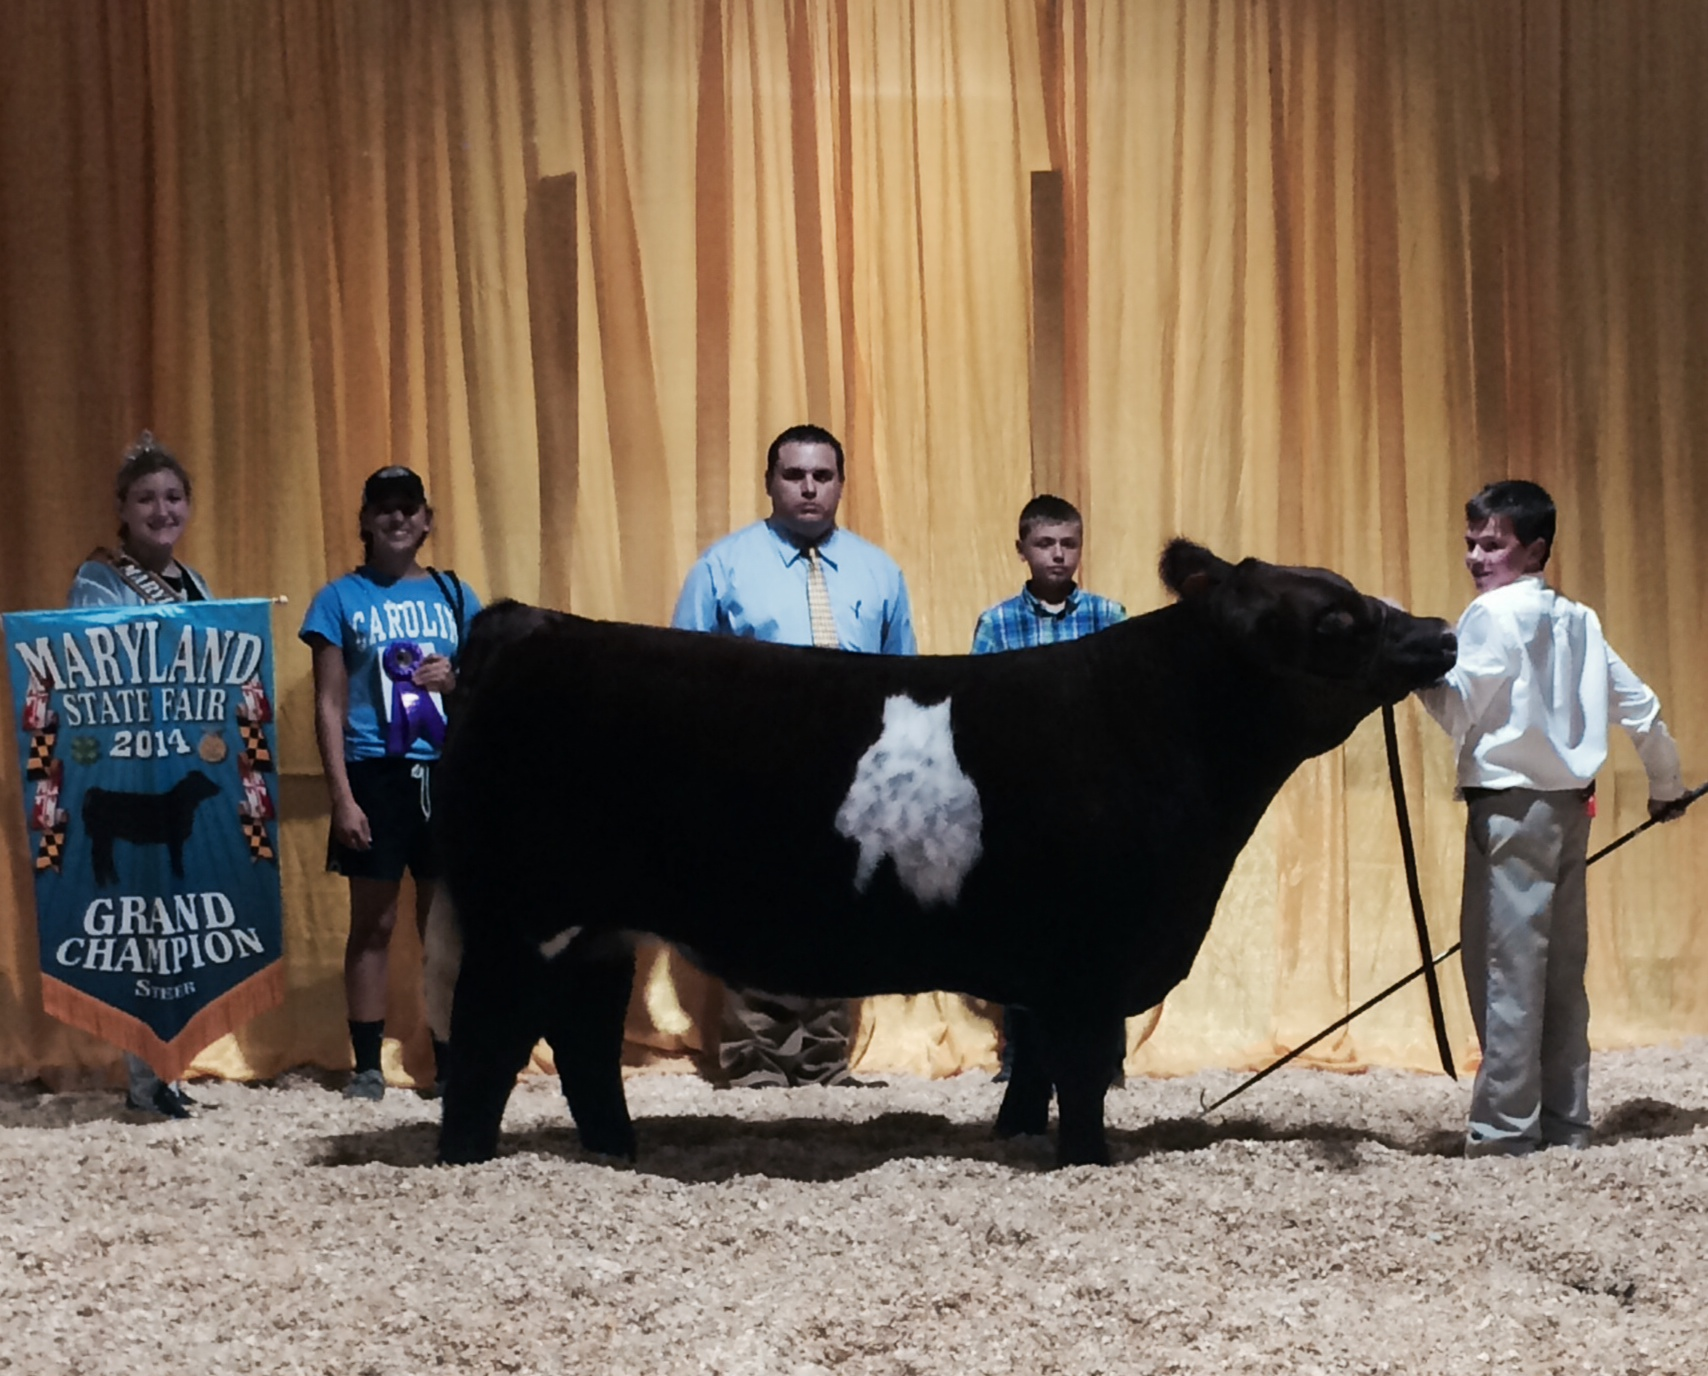 Grand Champion Market Steer at the 2014 Maryland State Fair.